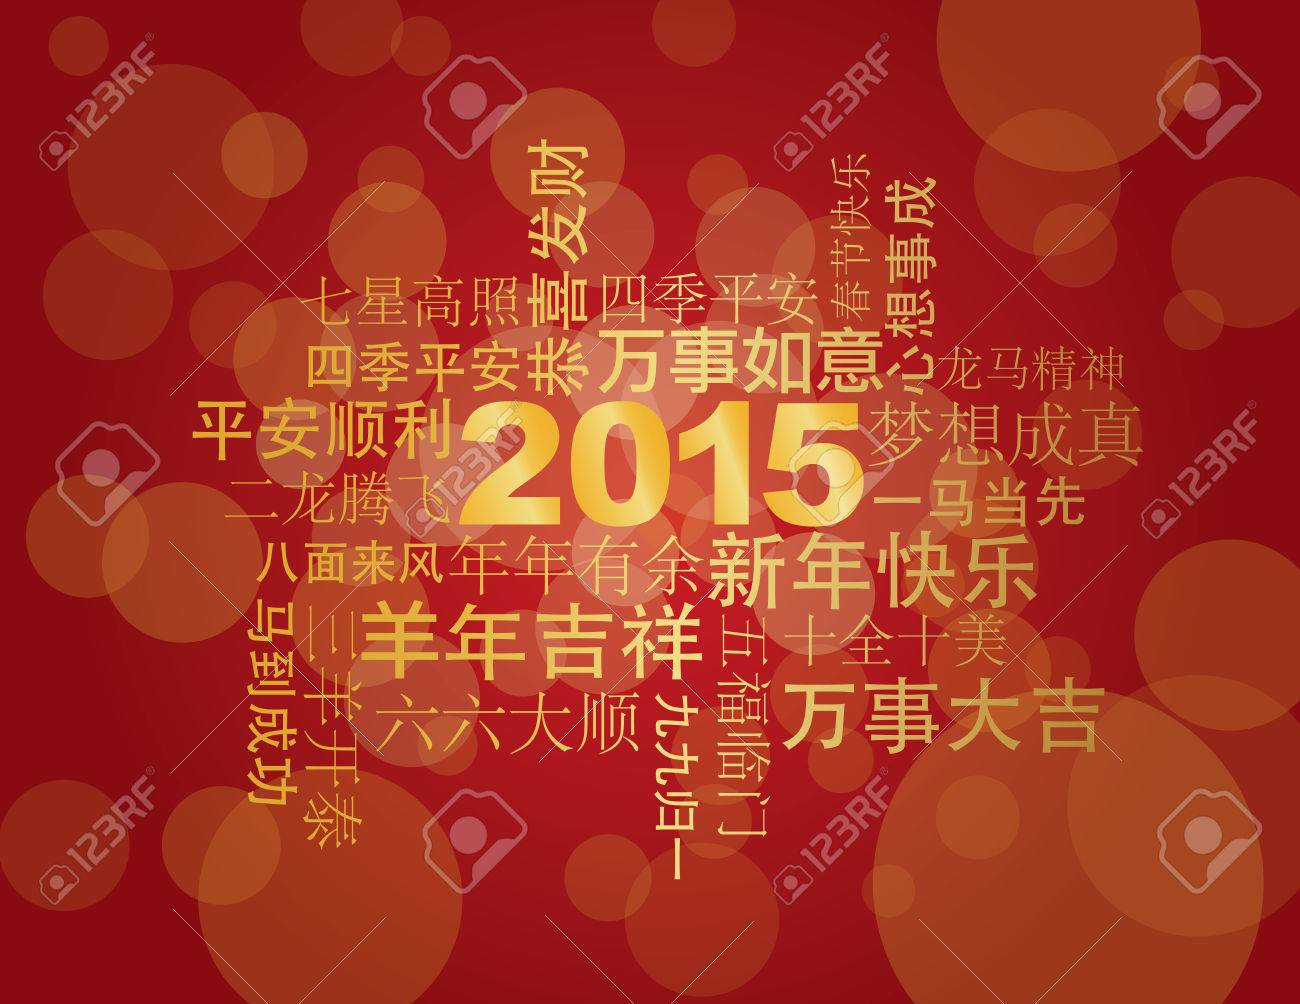 2015 chinese lunar new year greetings text wishing health good 2015 chinese lunar new year greetings text wishing health good fortune prosperity happiness in the year m4hsunfo